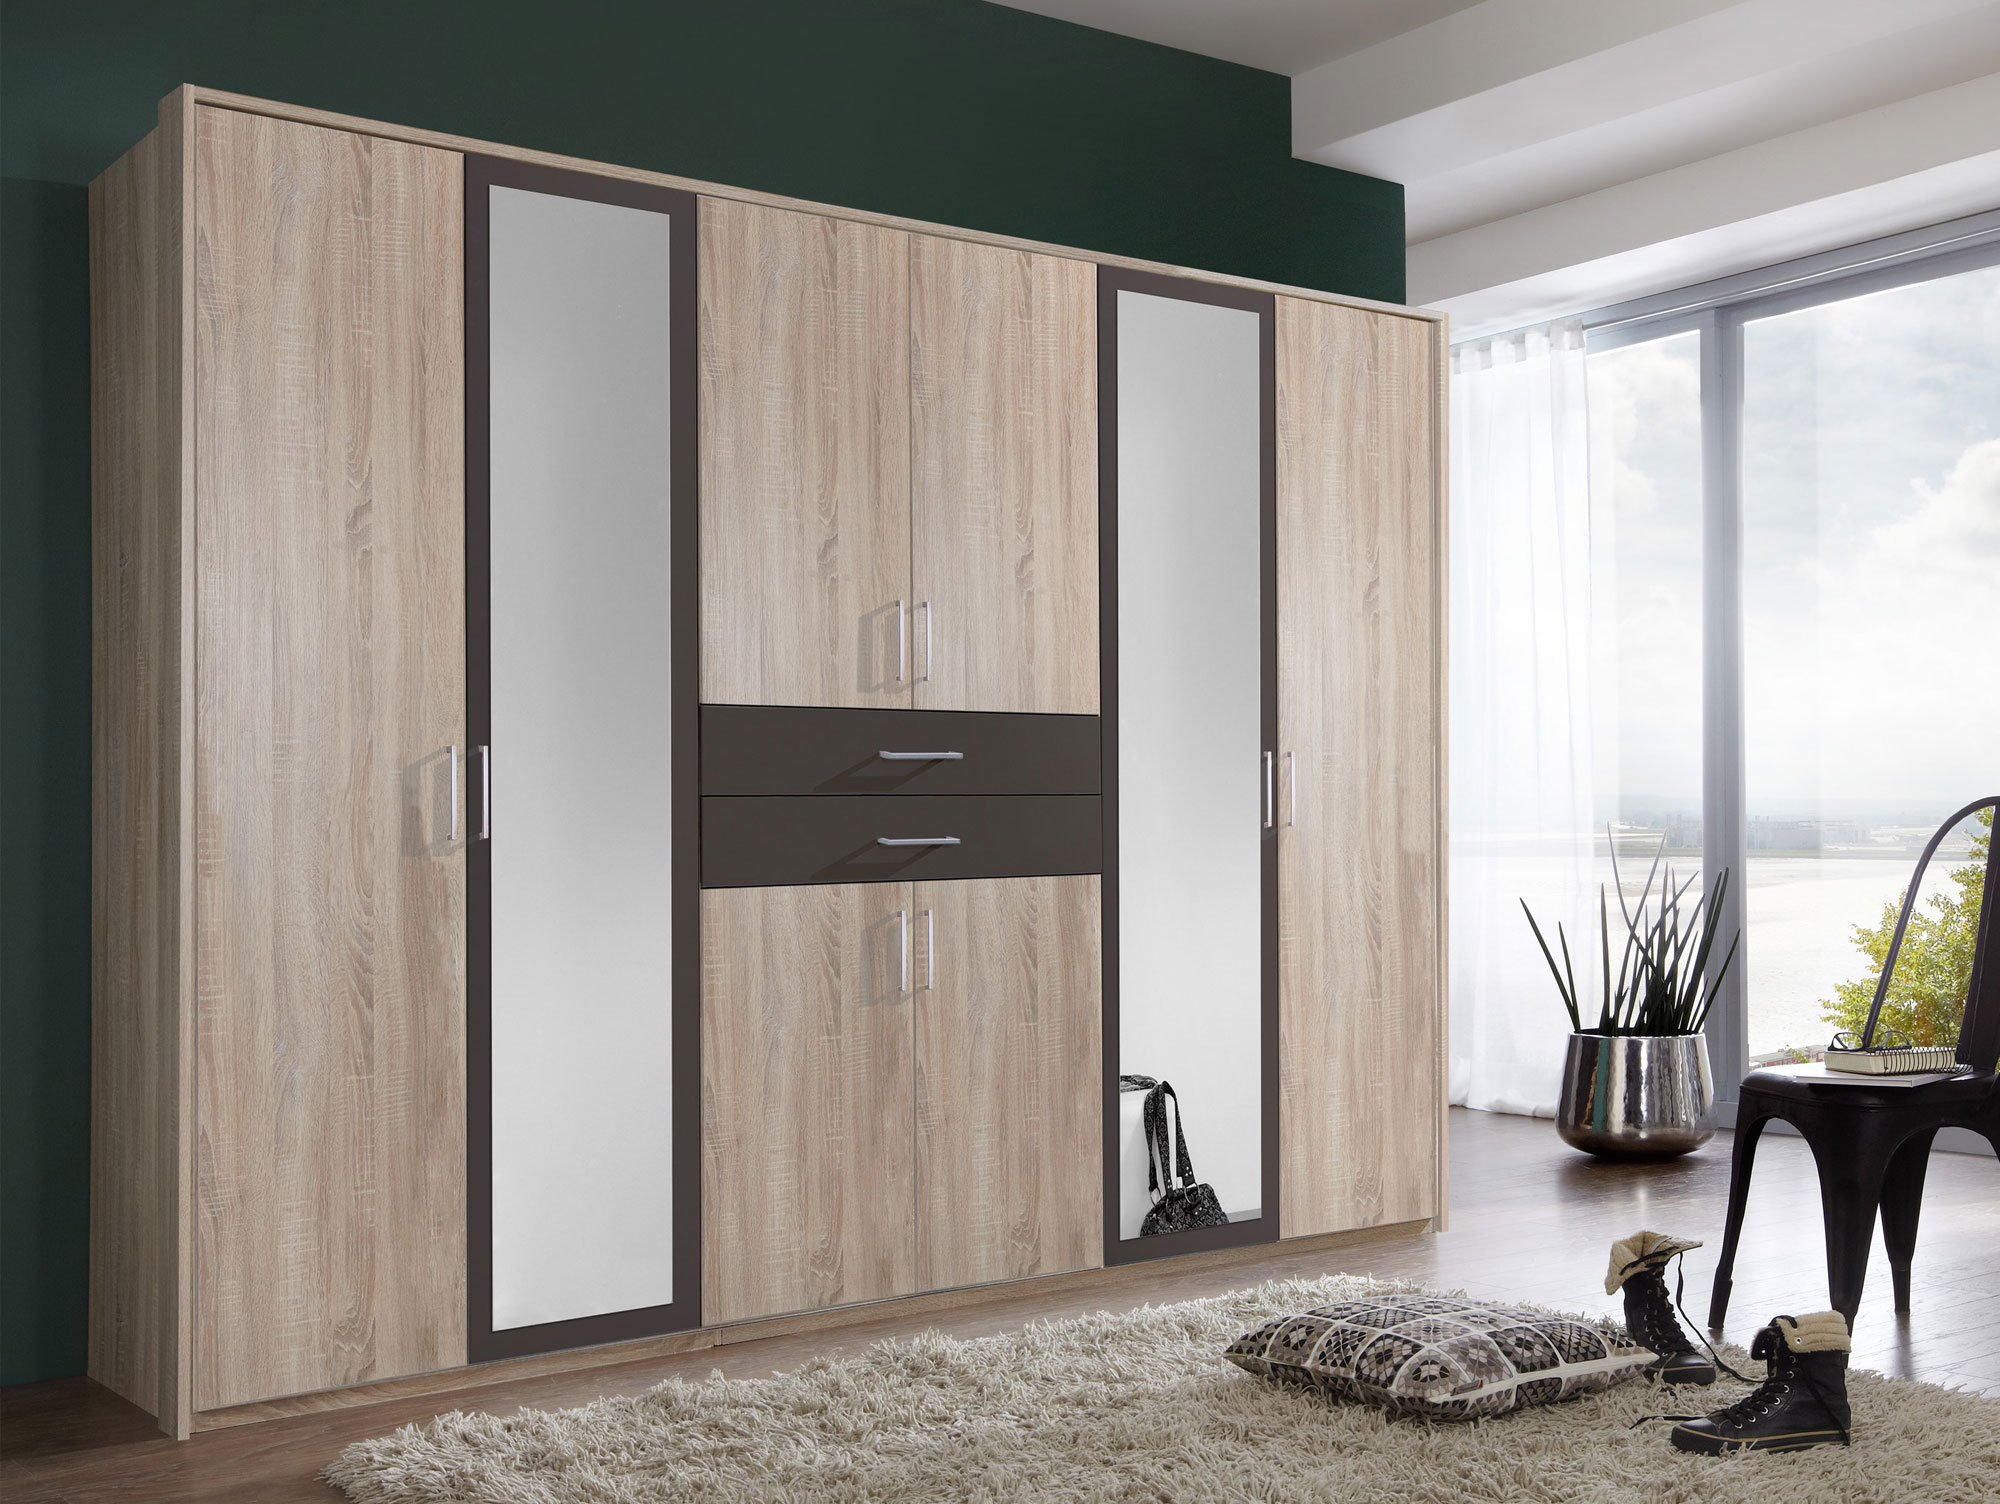 dustin kleiderschrank mit spiegelt r 270 cm eiche s gerau lavafarbig. Black Bedroom Furniture Sets. Home Design Ideas